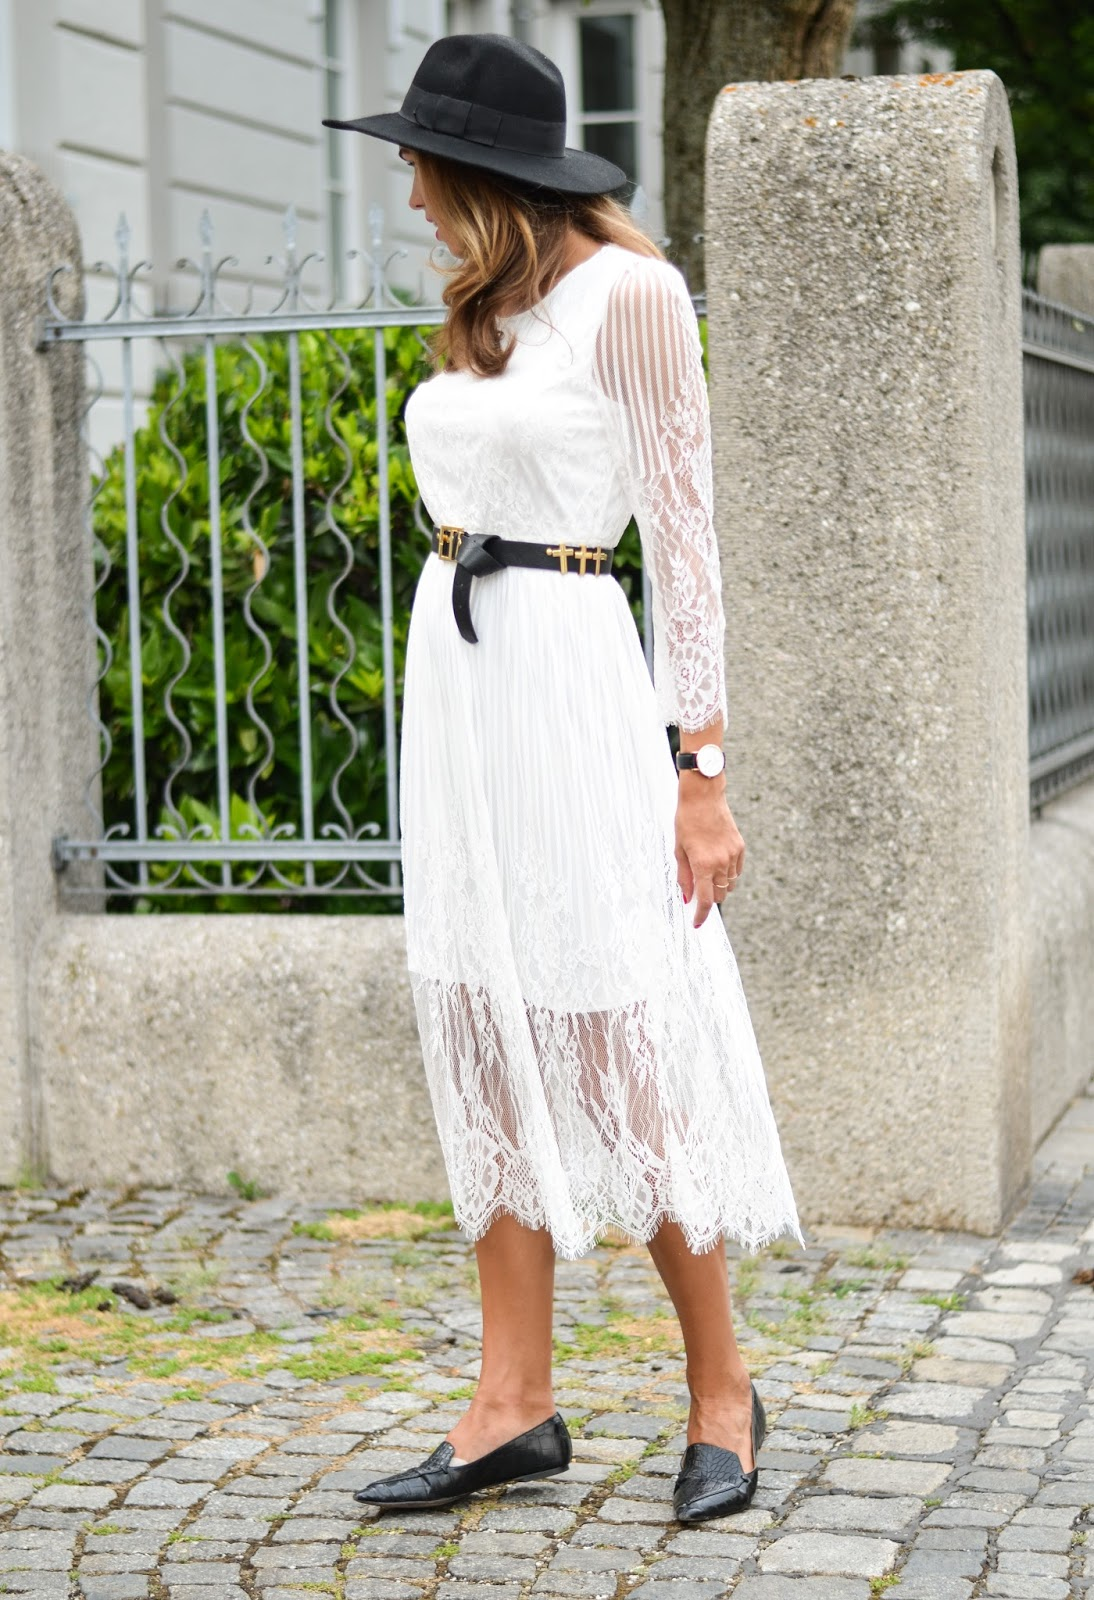 black white summer outfit lace dress black accessories munich street